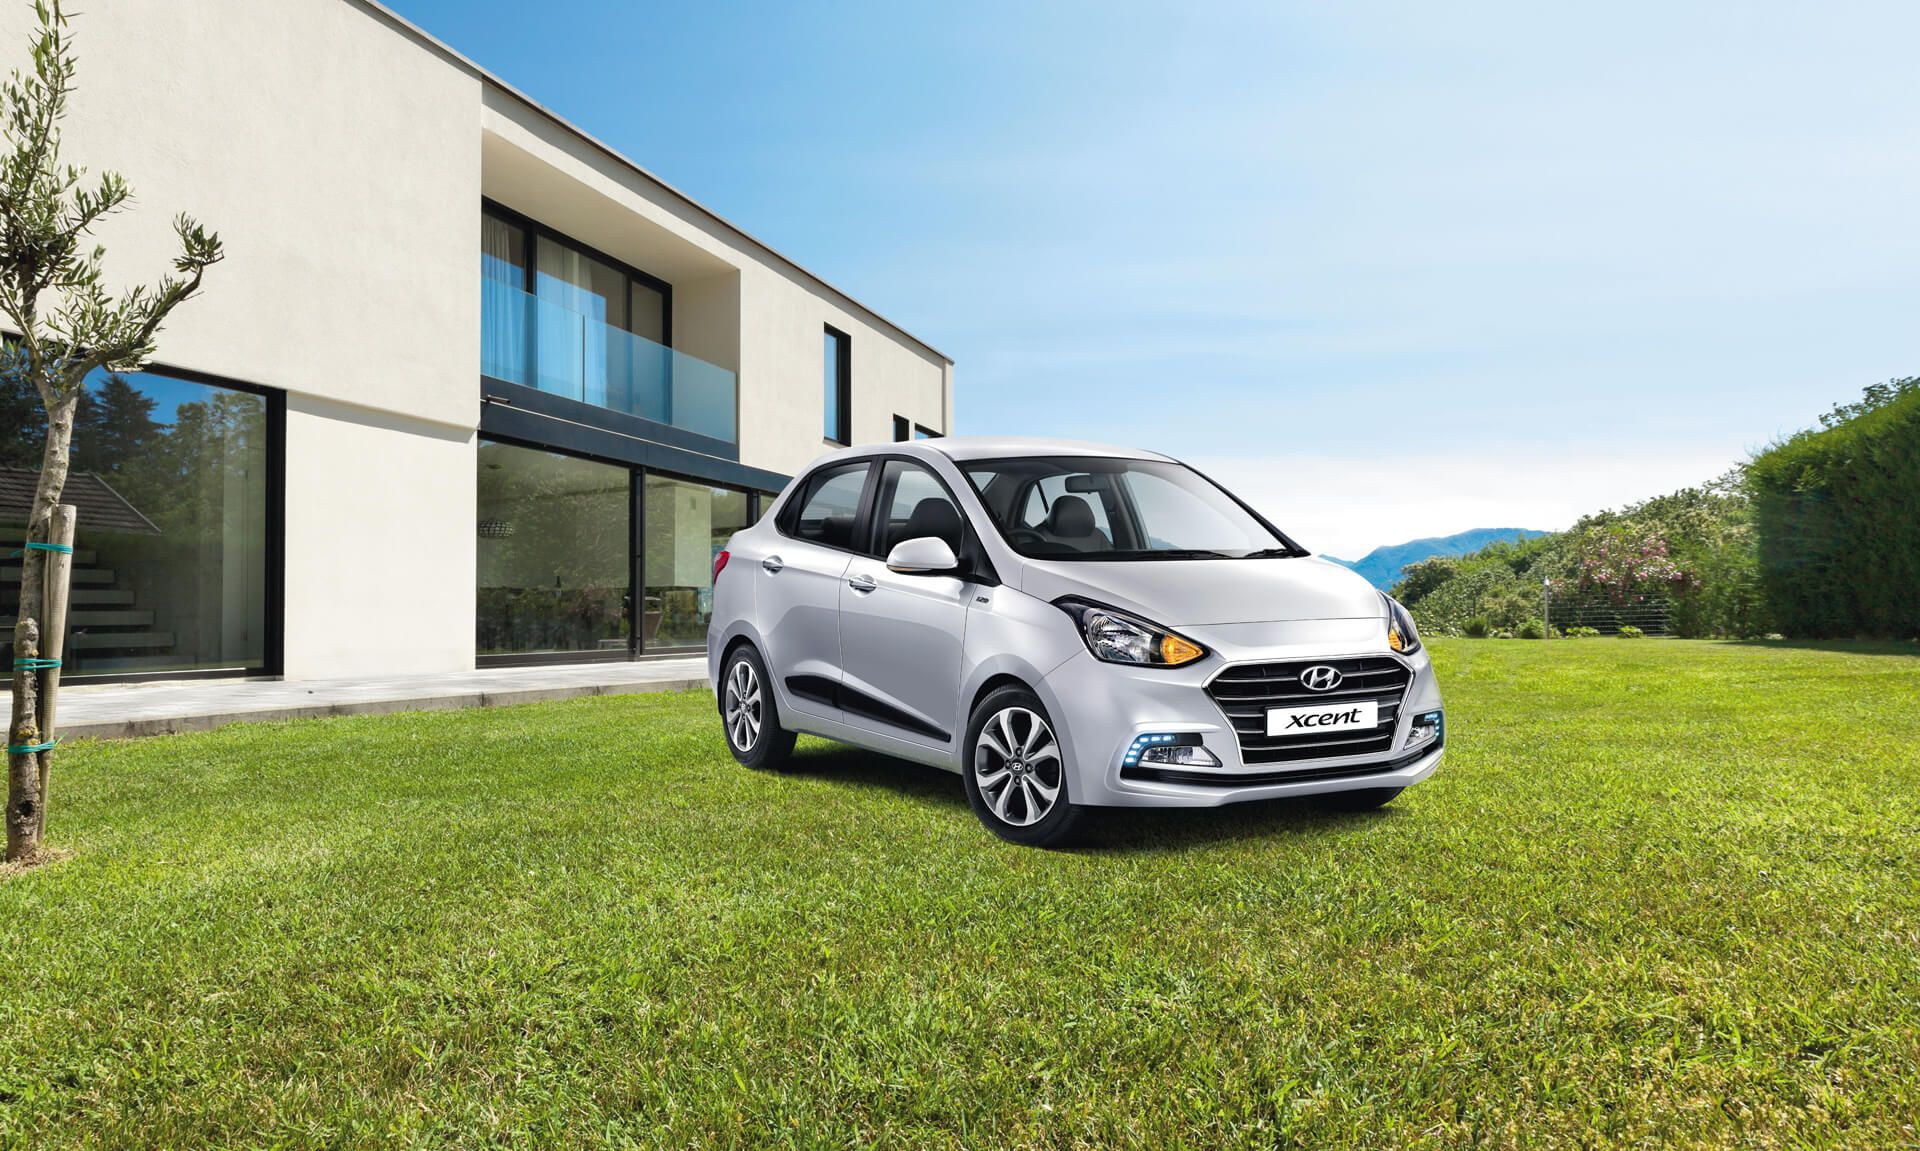 Hyundai Xcent Car Exterior Feature - bright and airy cabin